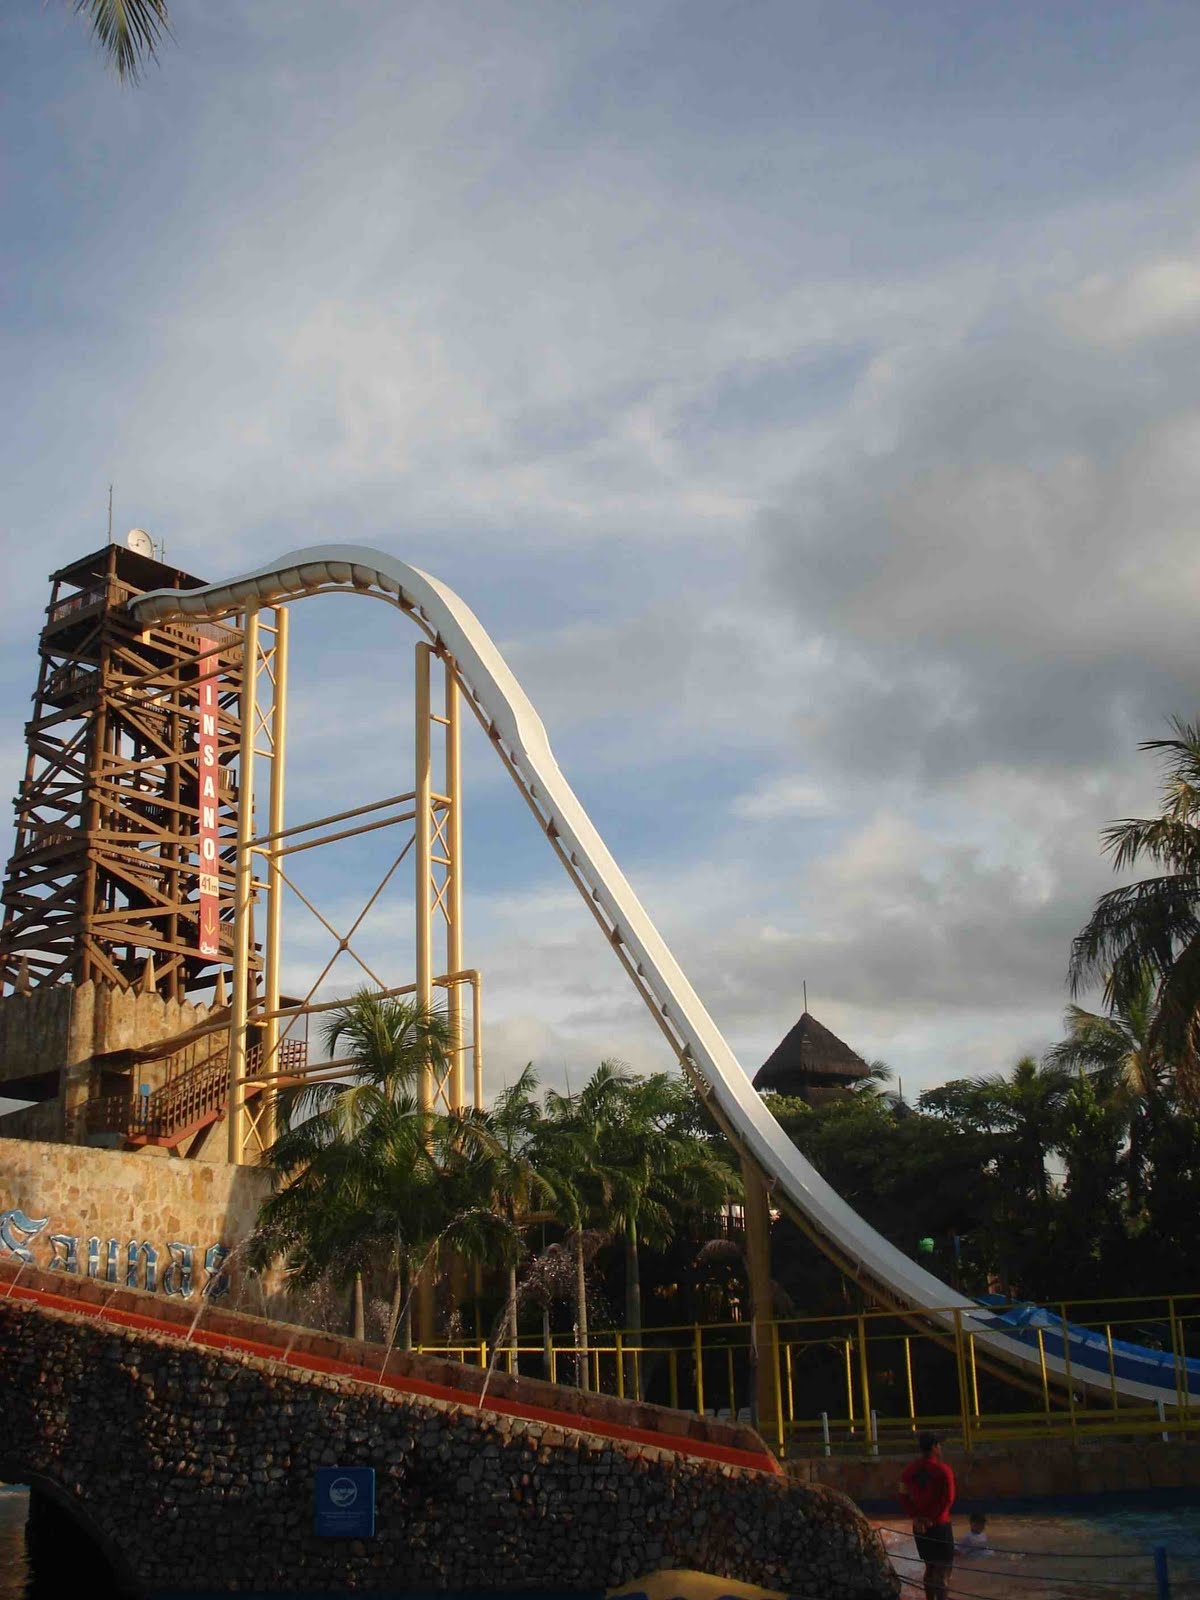 Speed roughly 105 kmh -- 65 Biggest Waterslide In The World 2012